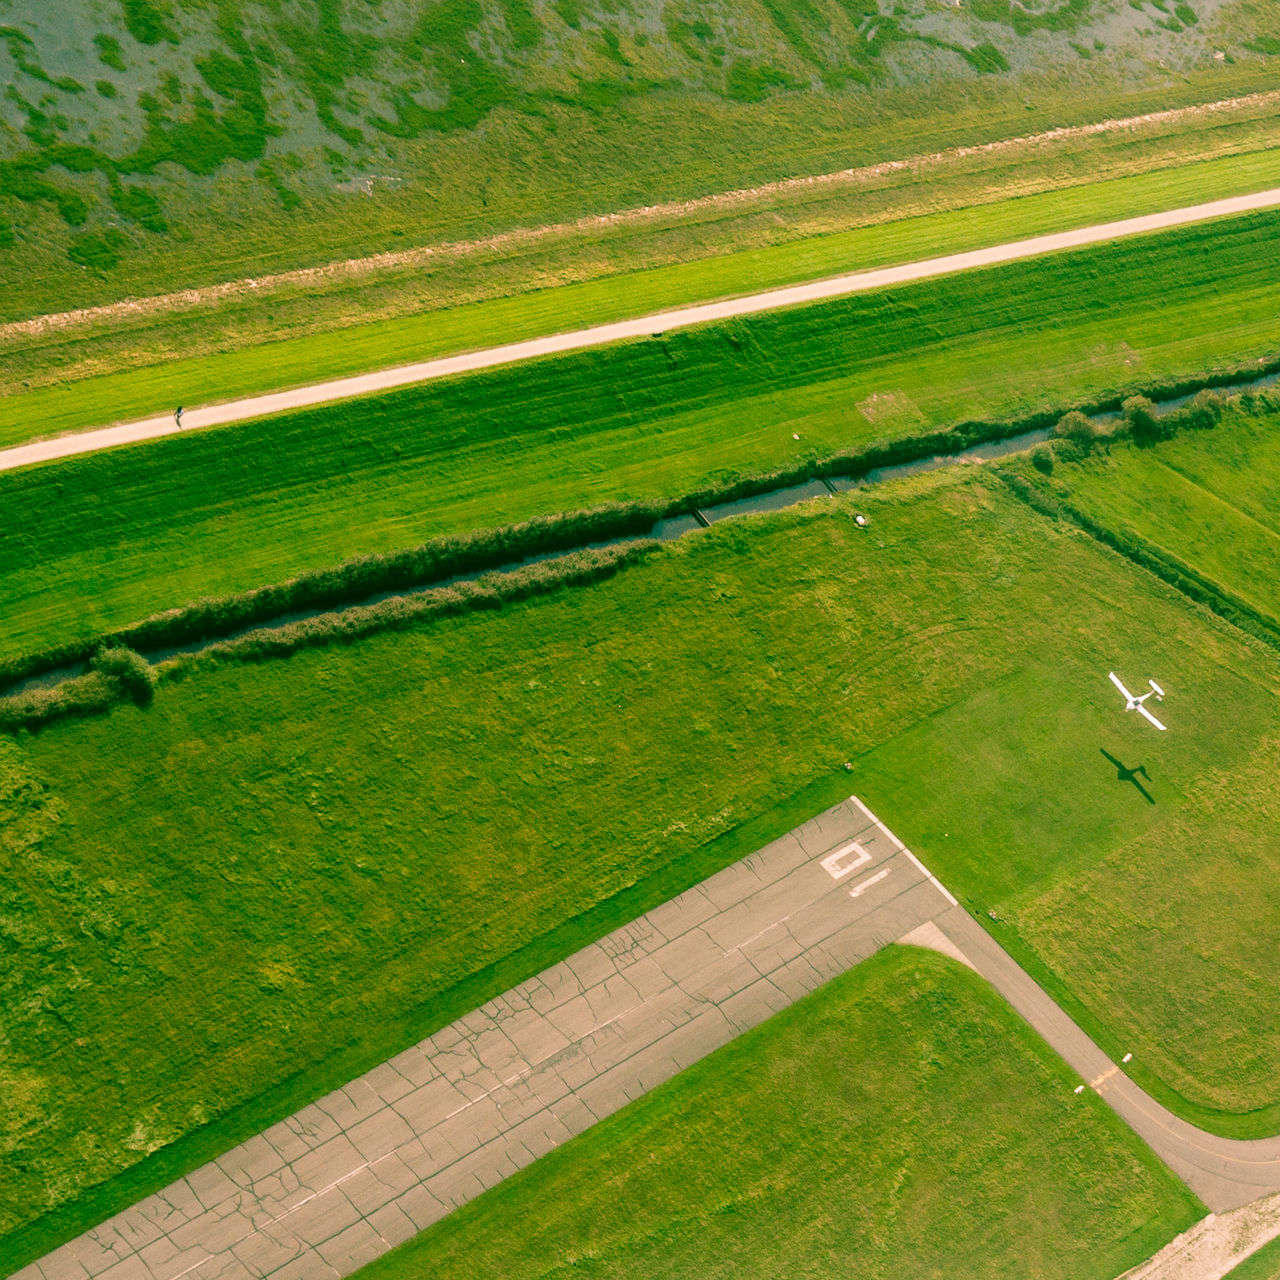 aerial view, agriculture, field, farm, landscape, rural scene, patchwork landscape, scenics, high angle view, green color, airplane, flying, nature, outdoors, tranquil scene, grass, beauty in nature, day, no people, sports track